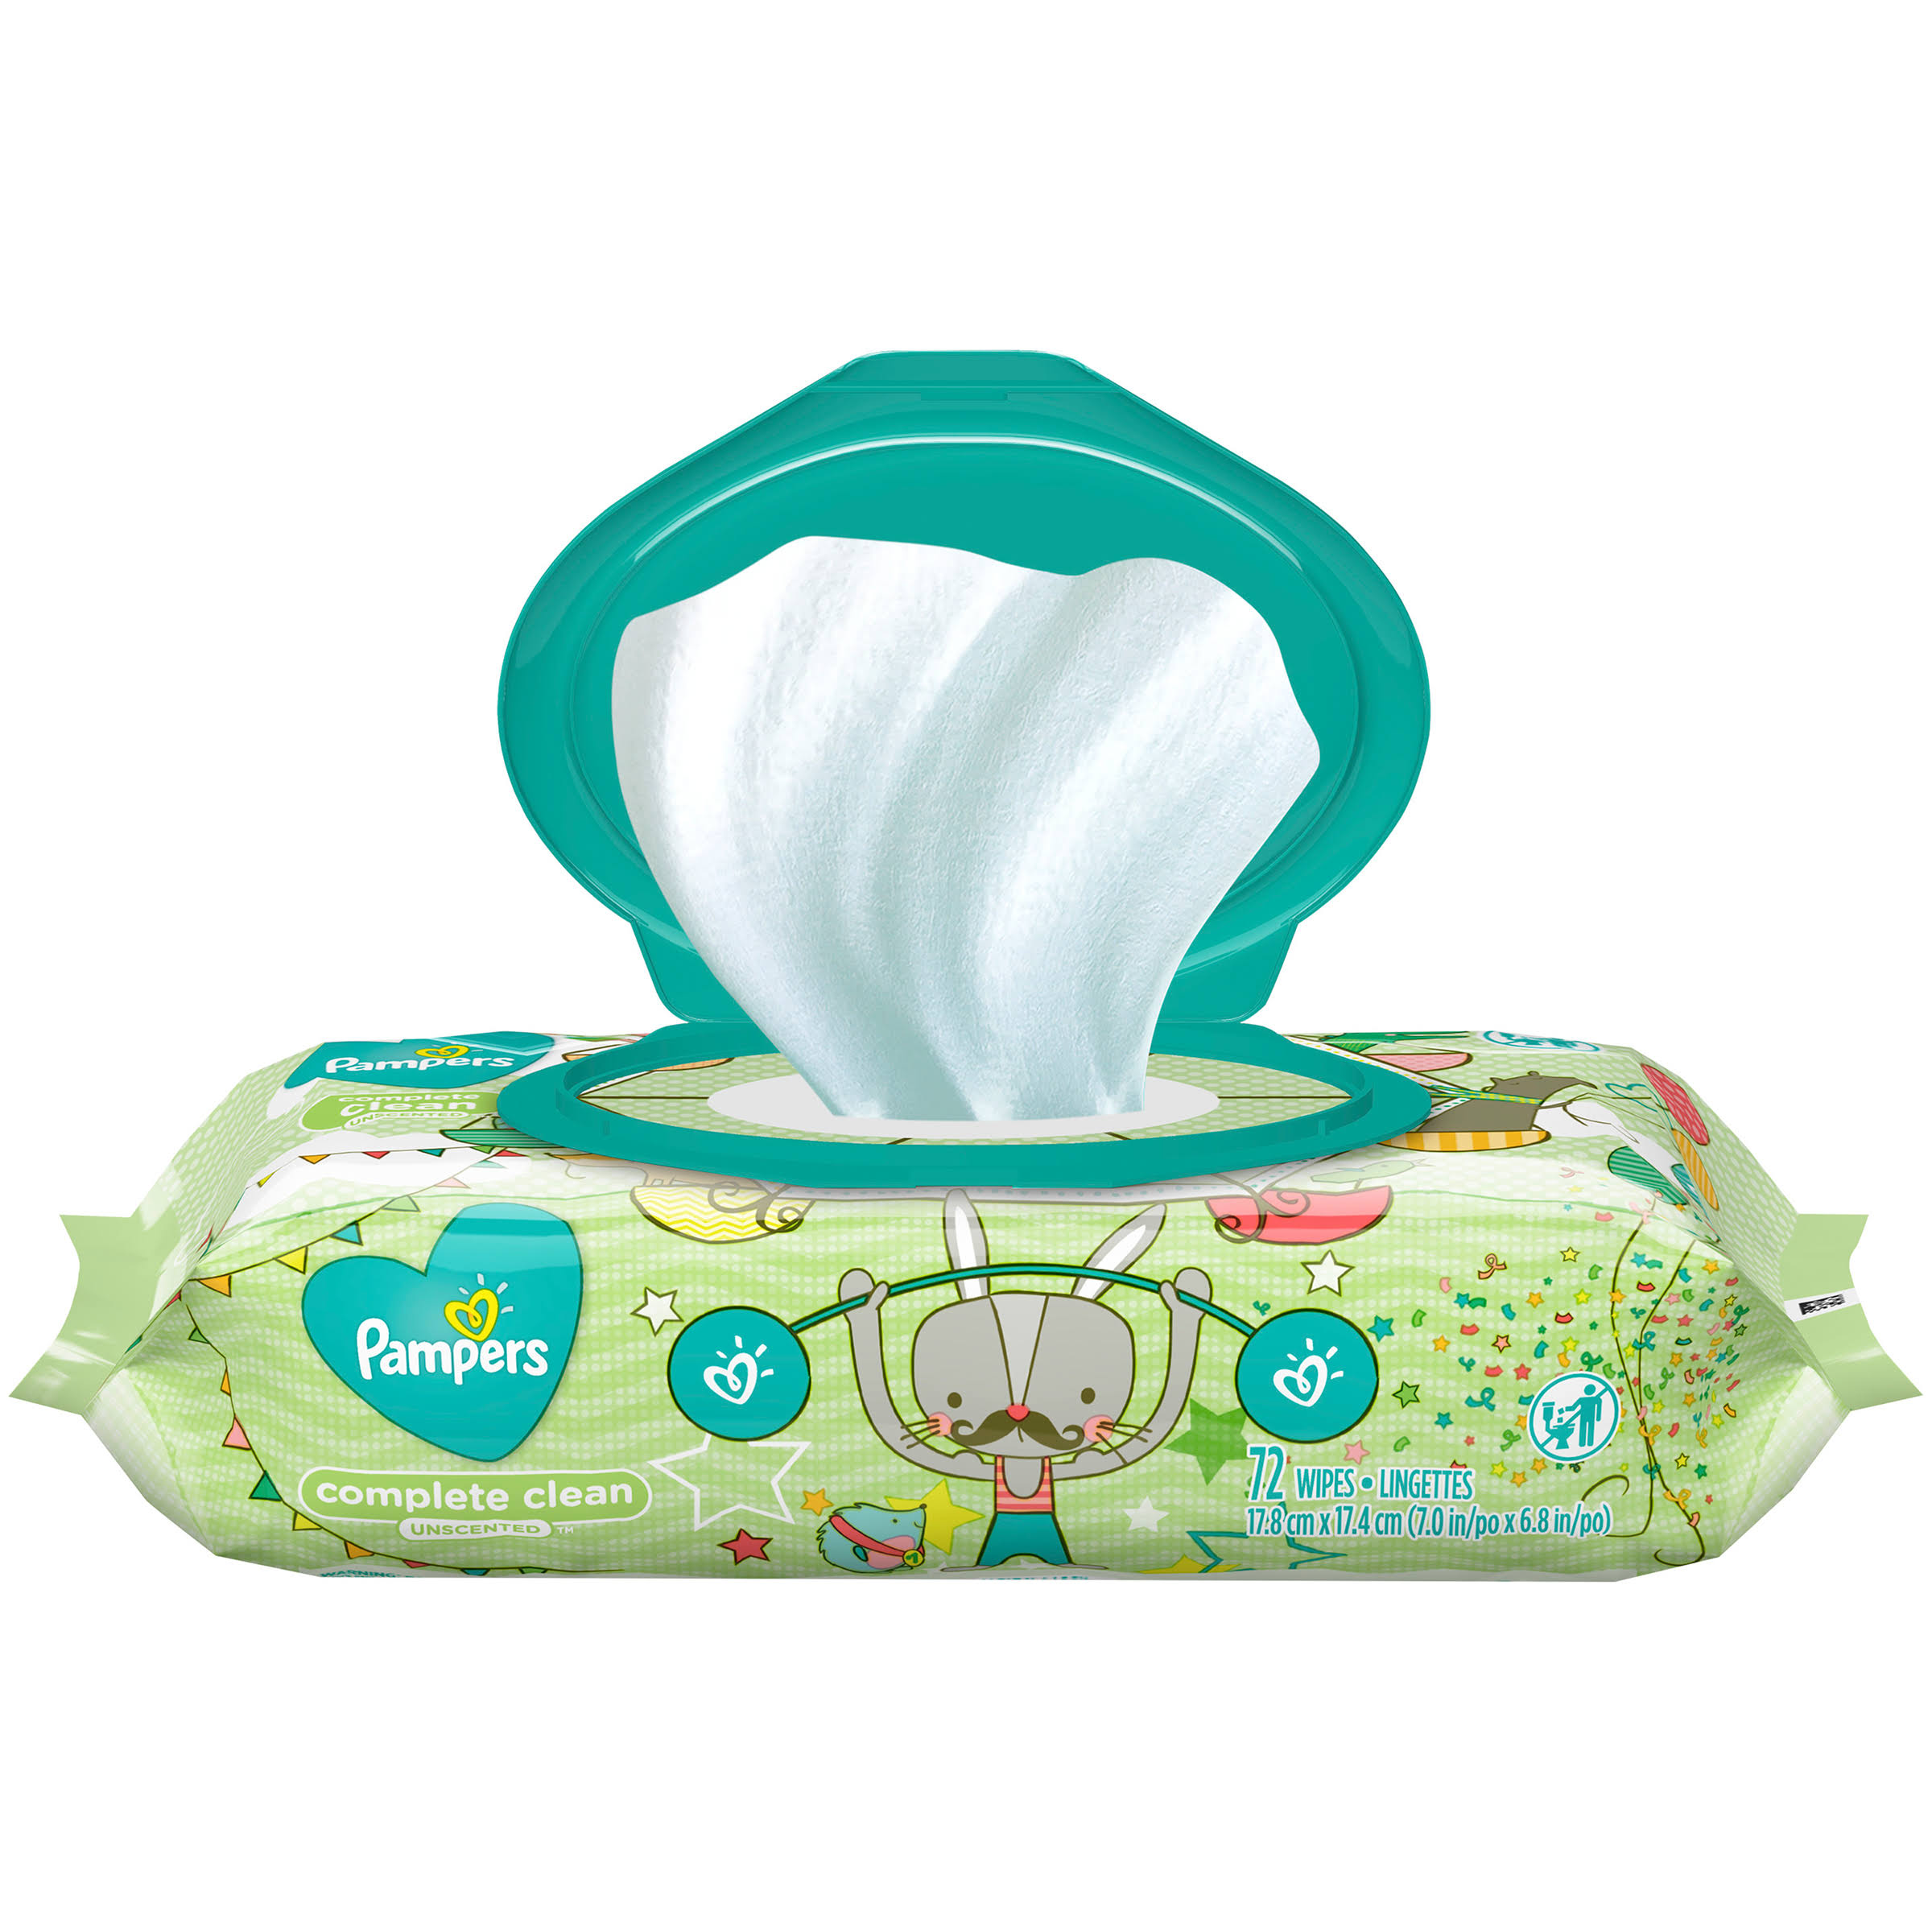 Pampers Complete Clean Baby Wipes - Unscented, 72 Wipes